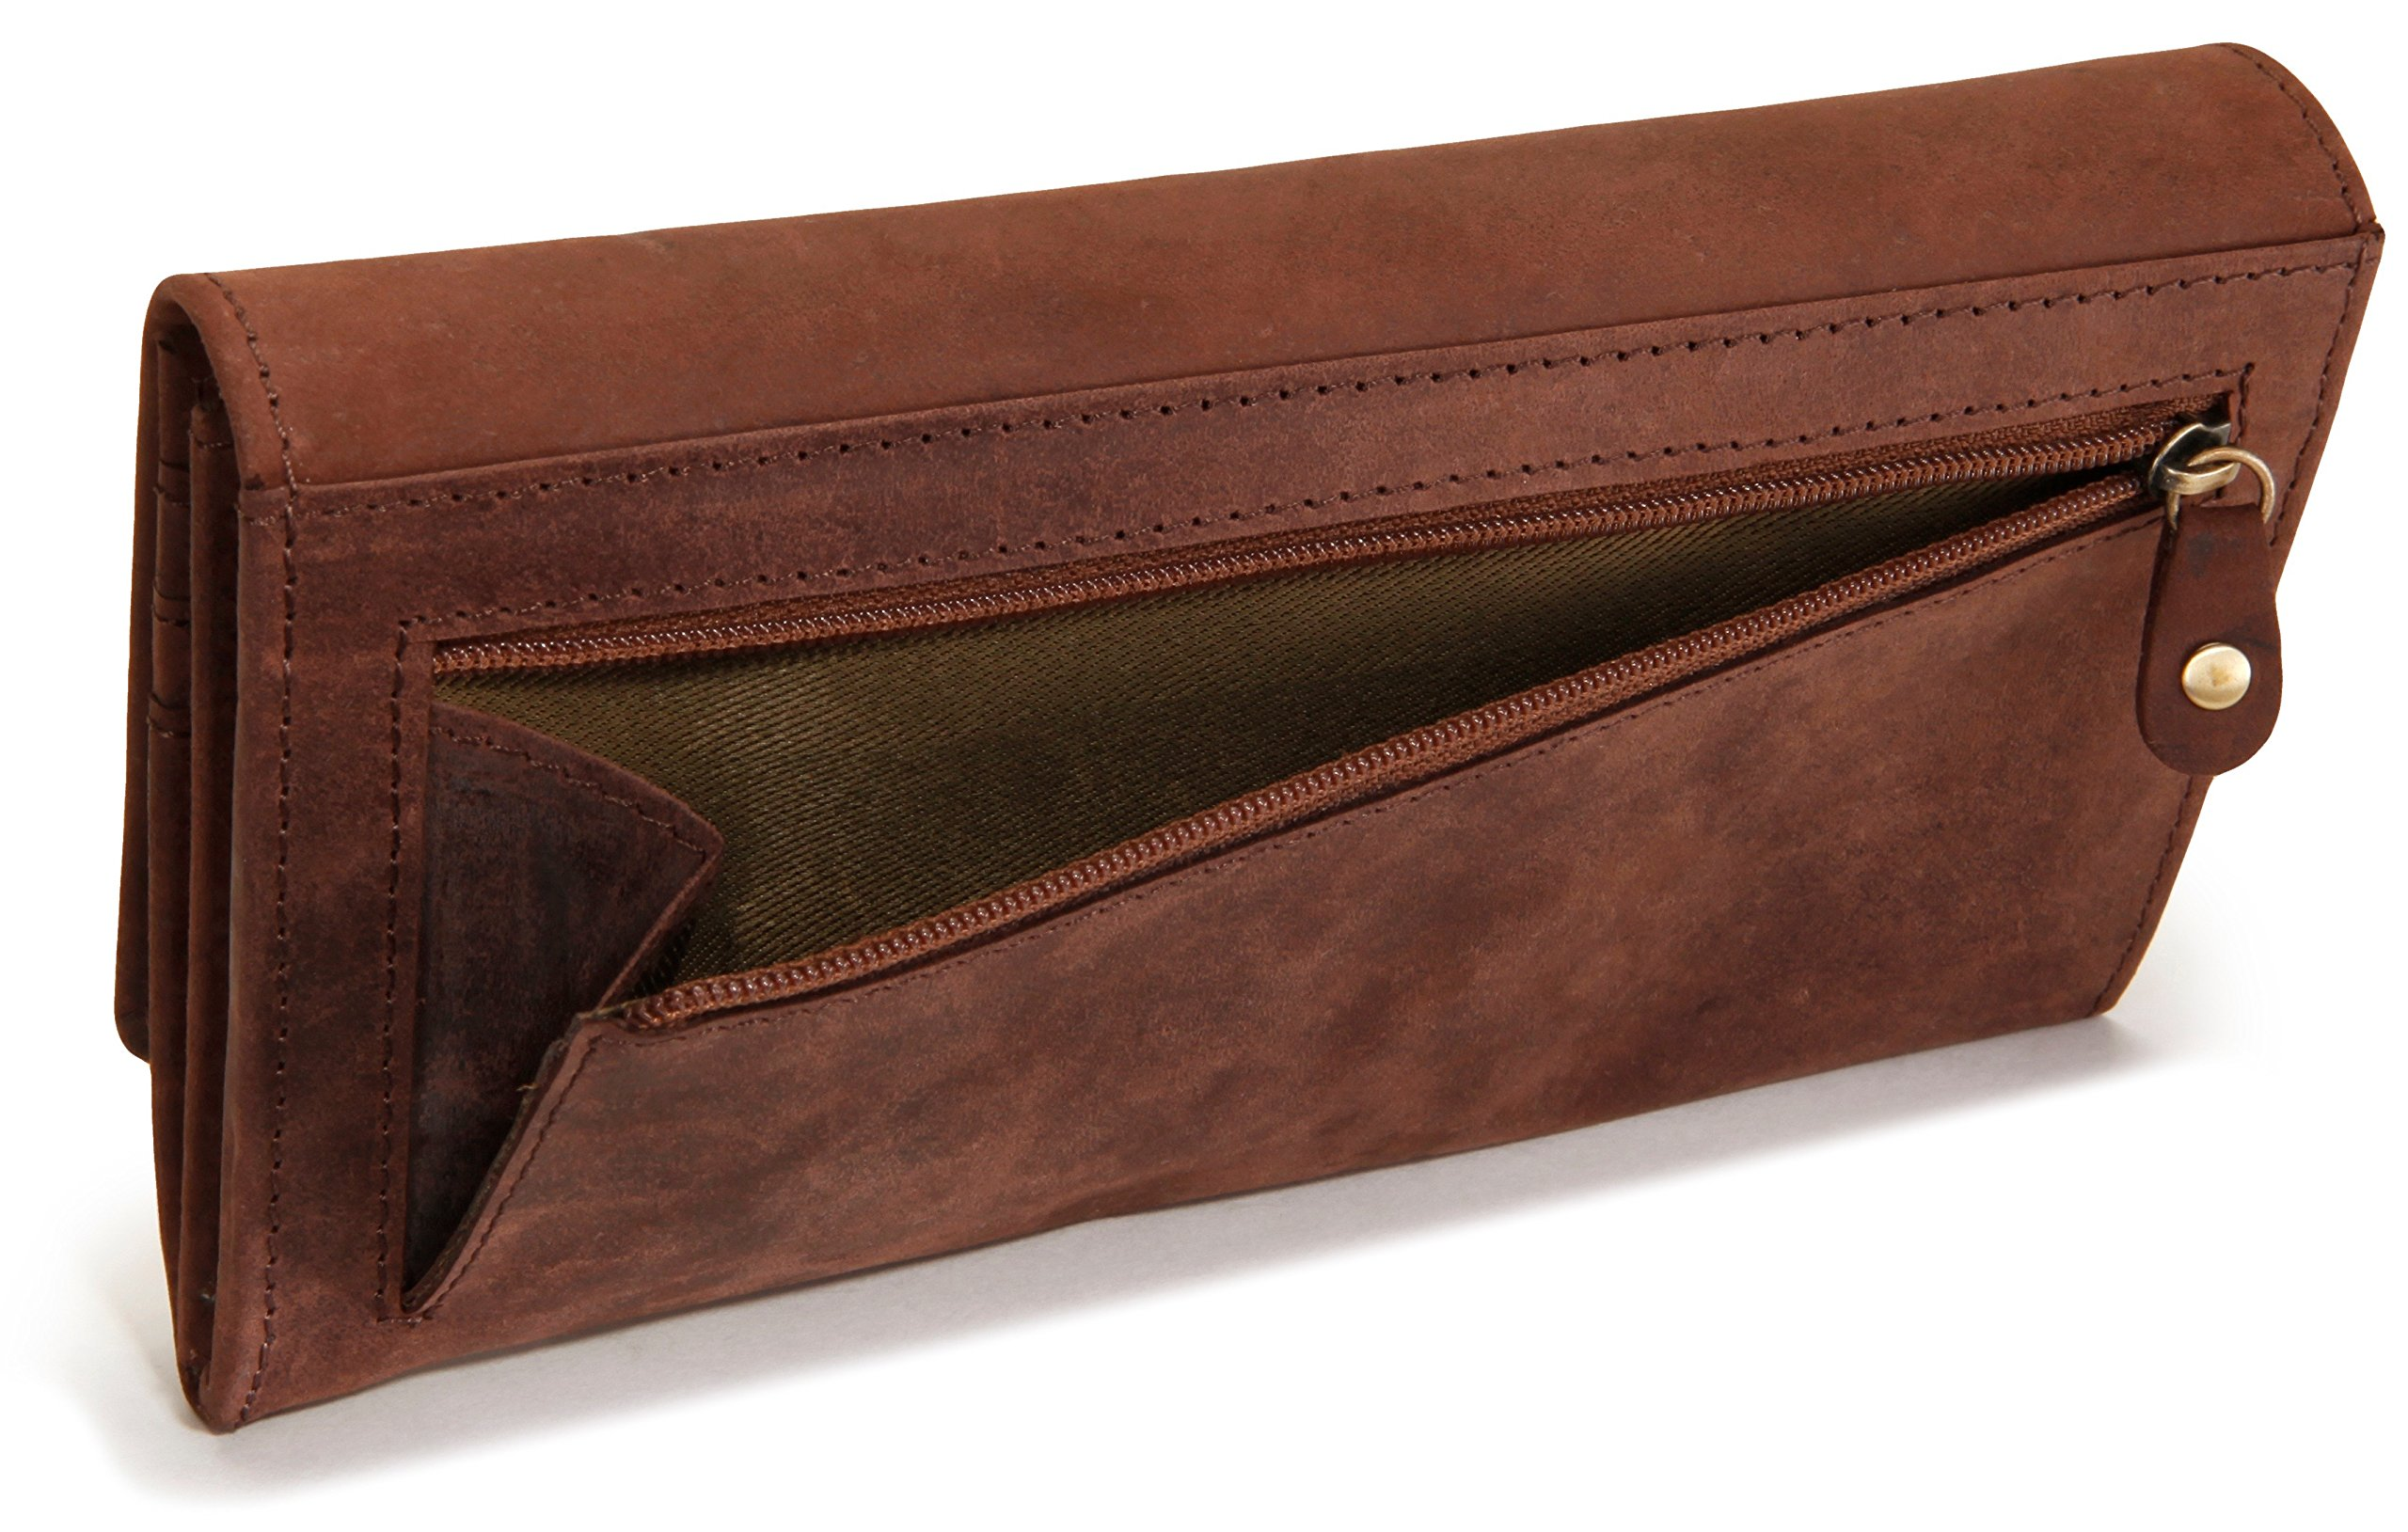 LEABAGS Charlotte genuine buffalo leather women's wallet in vintage style - Nutmeg by LEABAGS (Image #4)